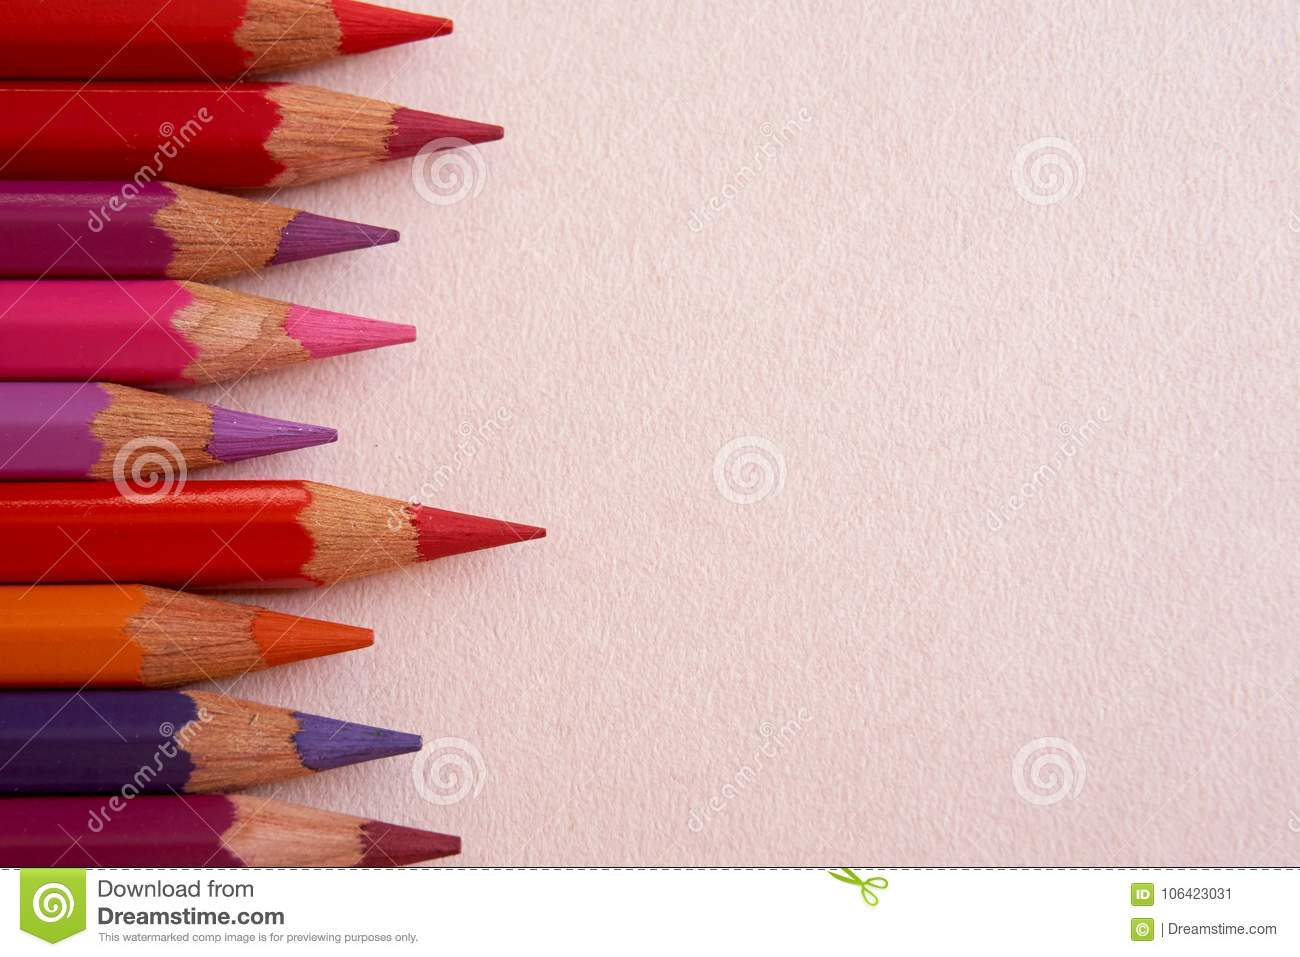 Red colored pencils over a pink background.